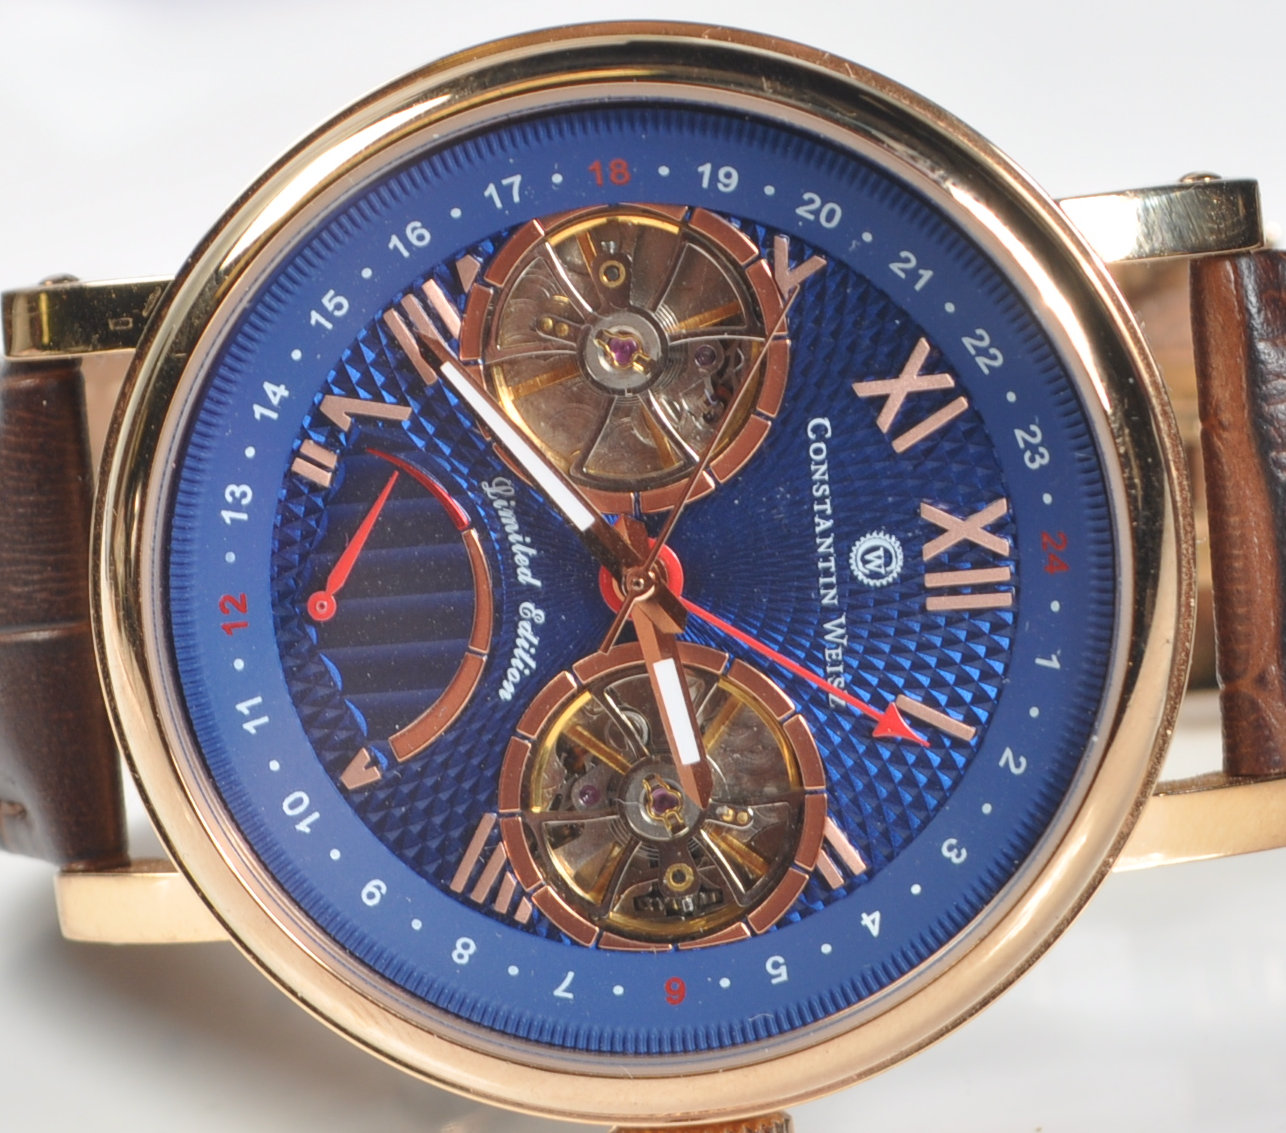 CONSTANTIN WEISZ DOUBLE HEART AUTOMATIC WRISTWATCH - Image 2 of 7